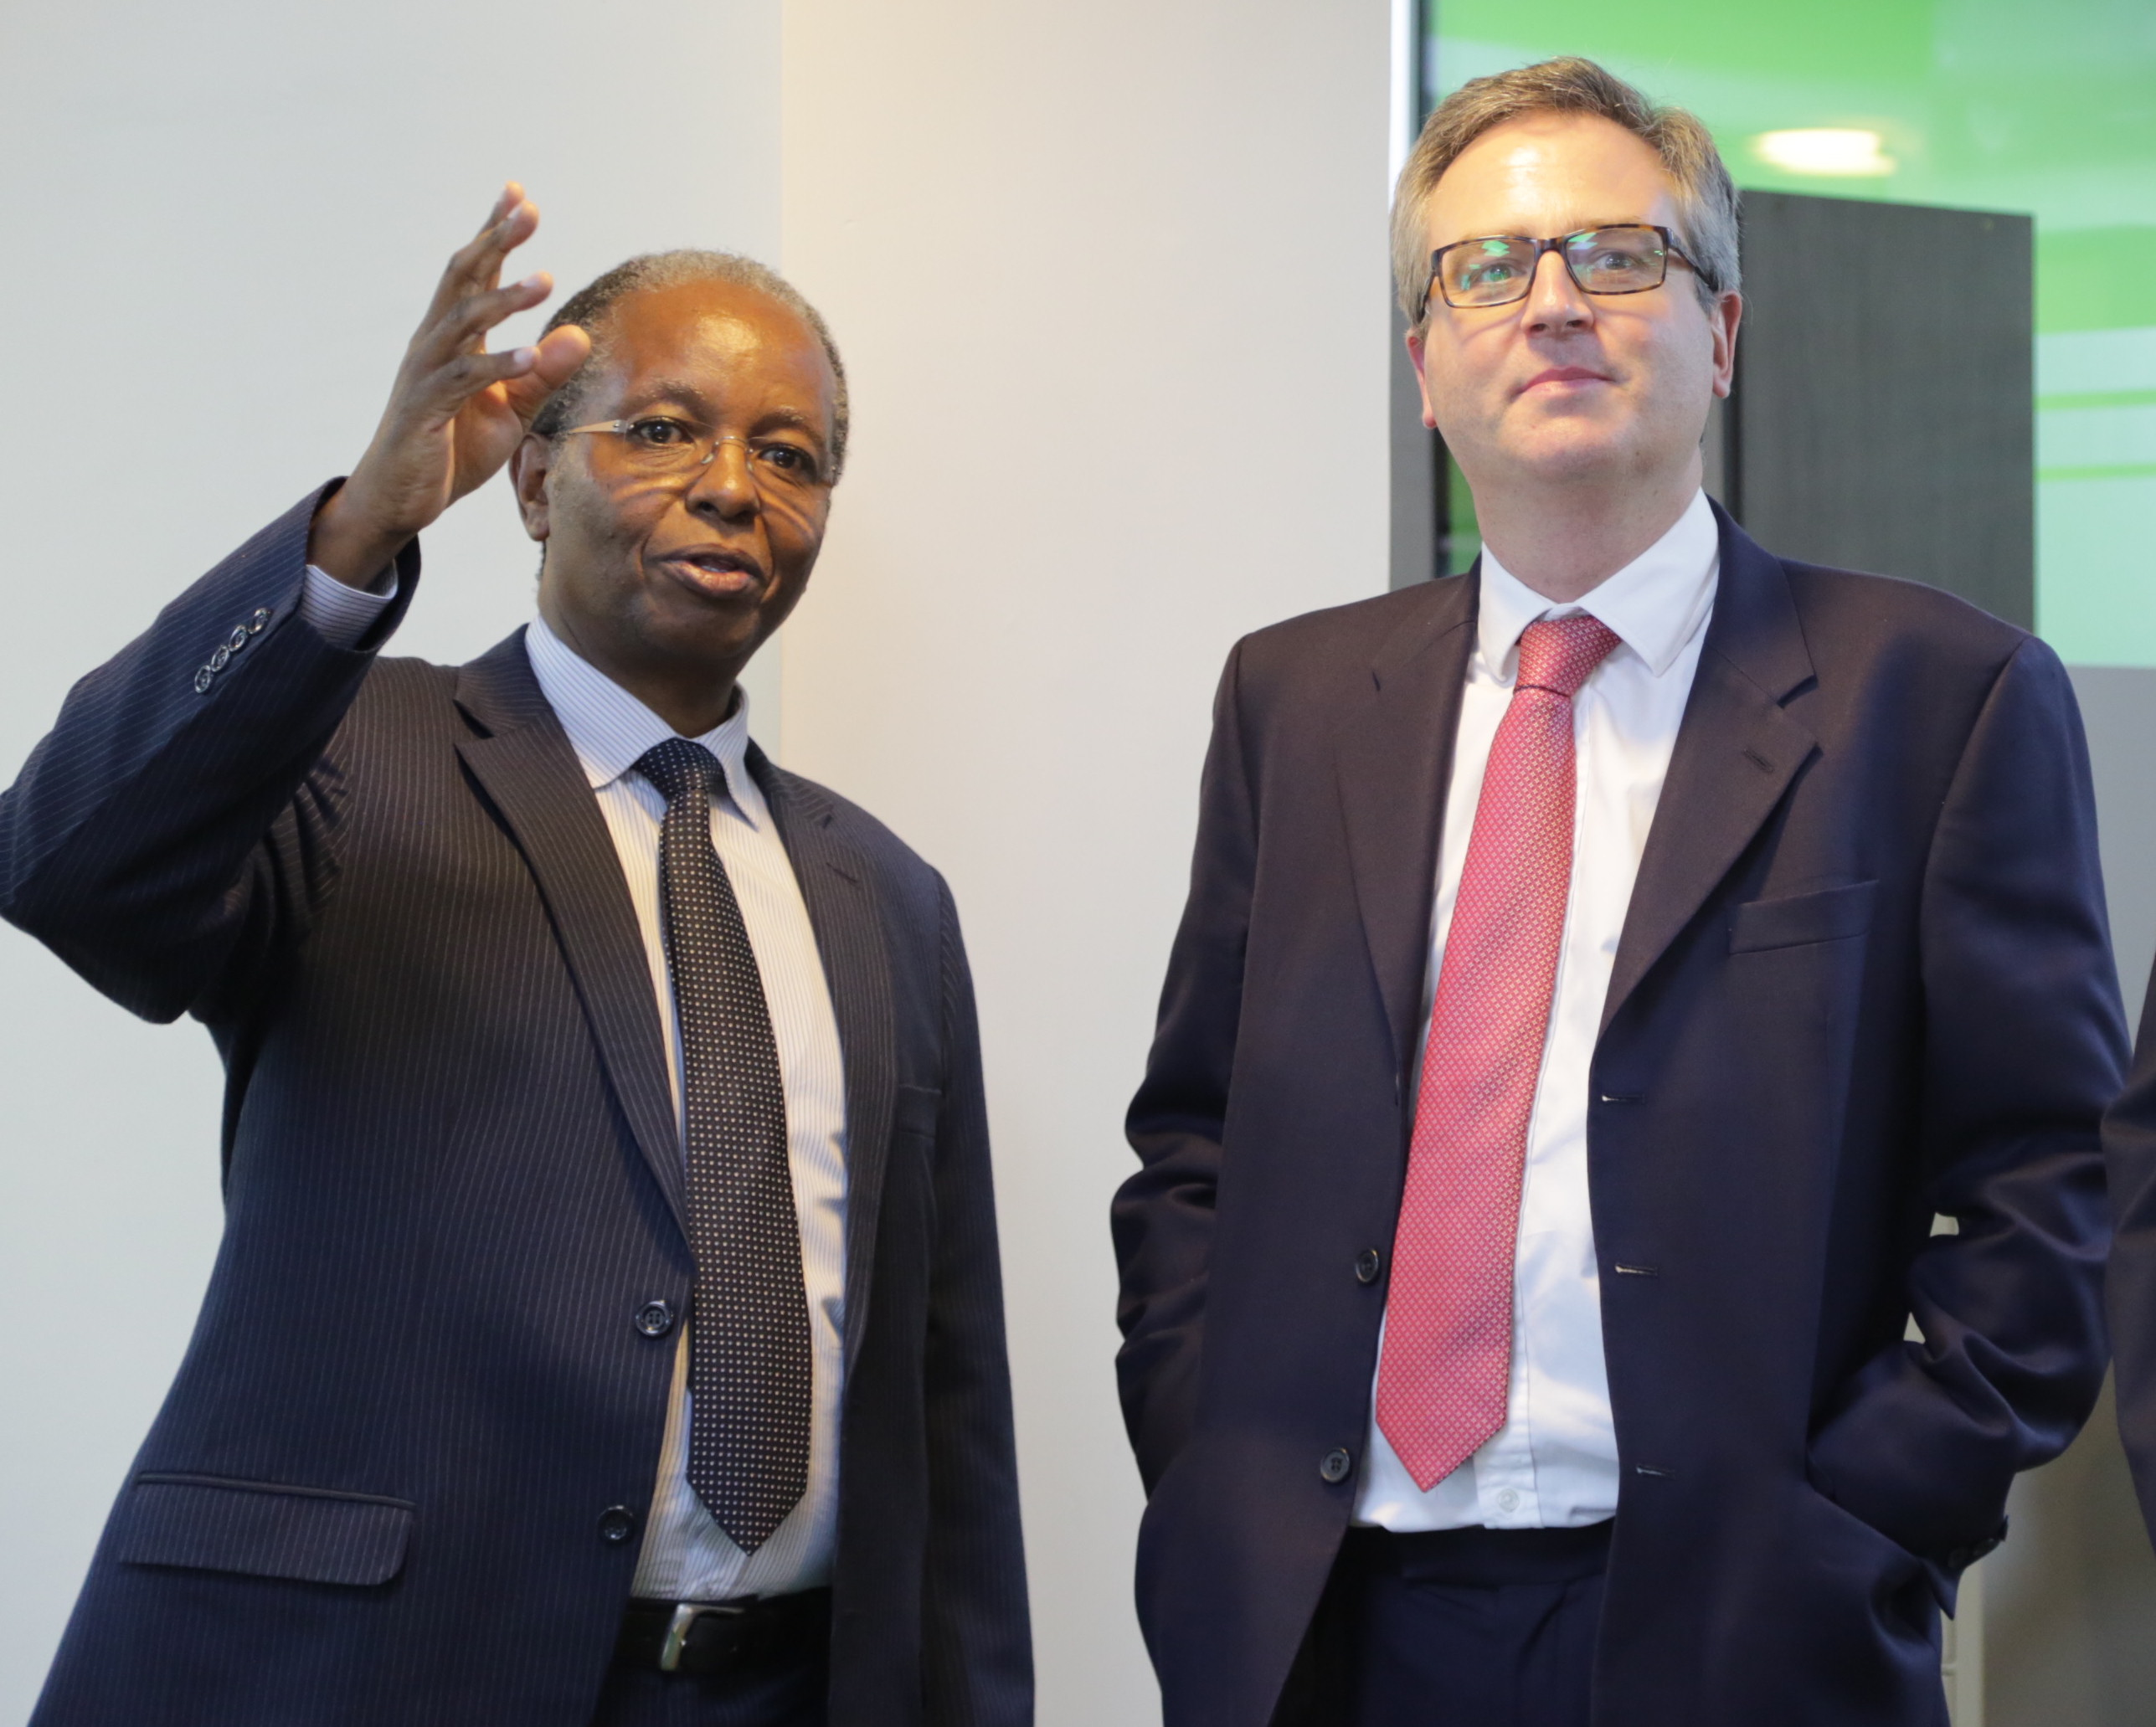 KMT CEO Kamau Kuria and UK Ambassador to Kenya Nic Hailey when he paid a courtesy call at the company Headquarters at 14 Riverside. The Ambassador hailed KMT work, pointing out that KMT was close to his heart